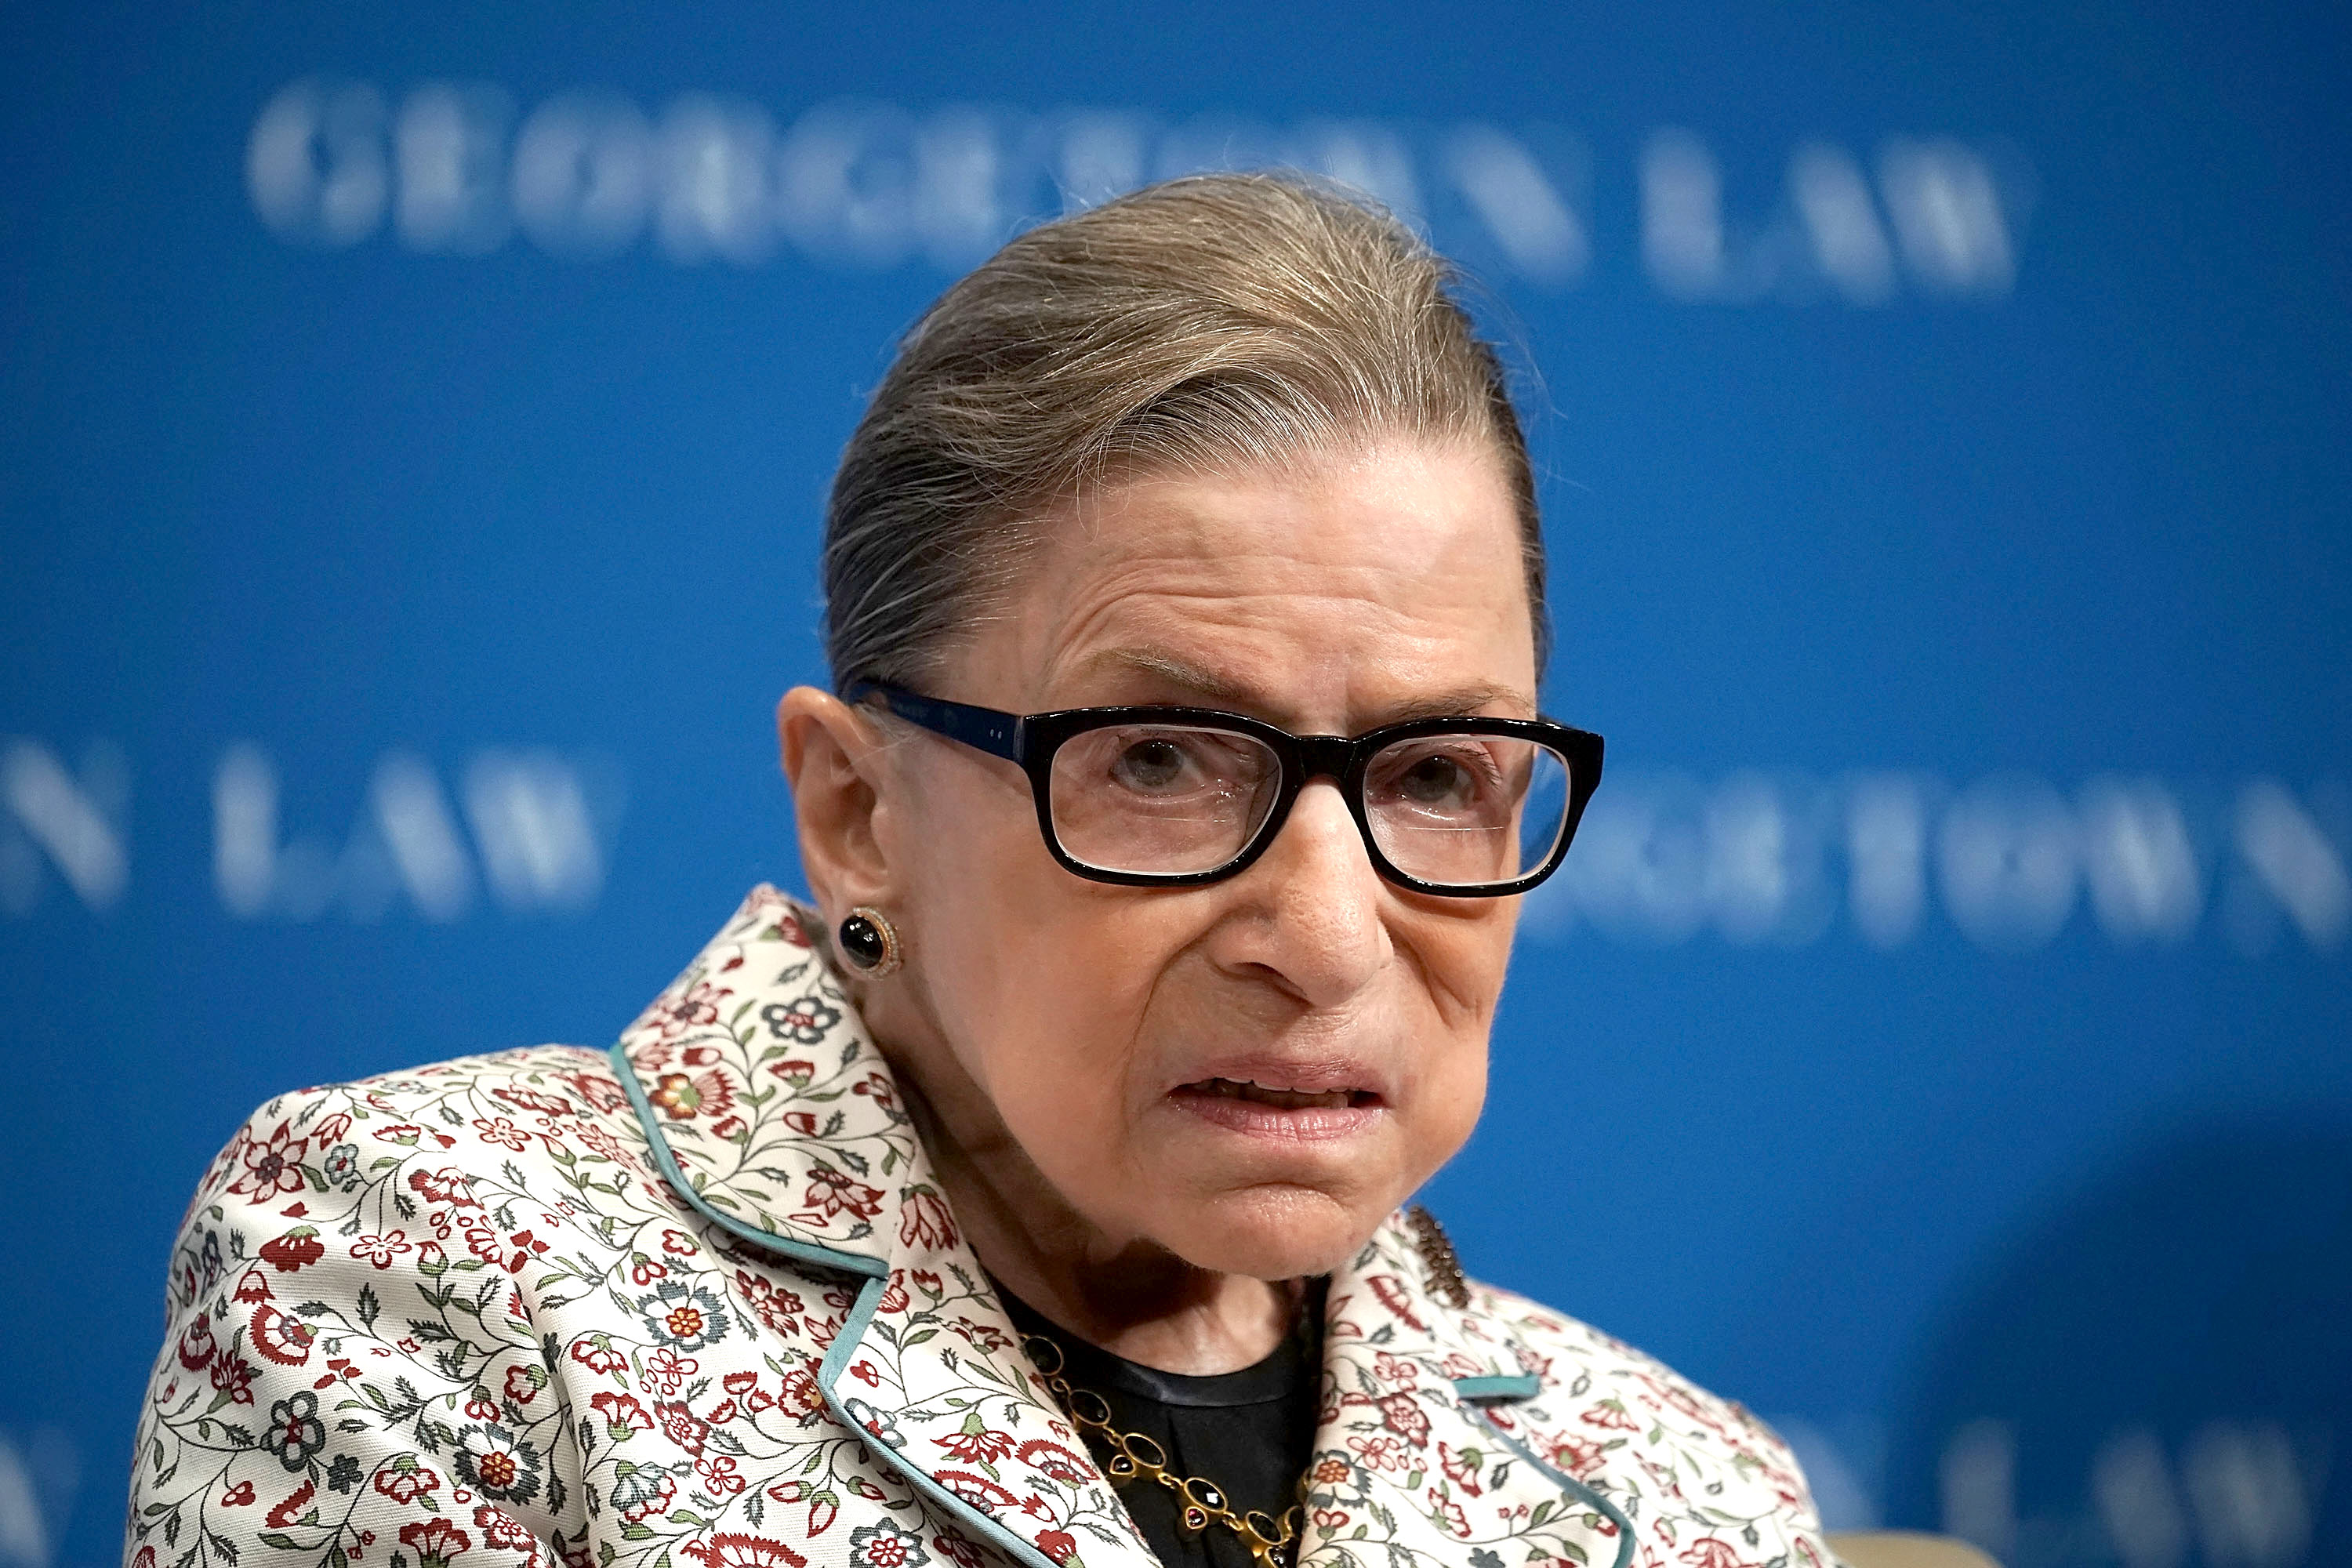 Justice Ruth Bader Ginsburg to lie in repose at the Supreme Court Wednesday and Thursday